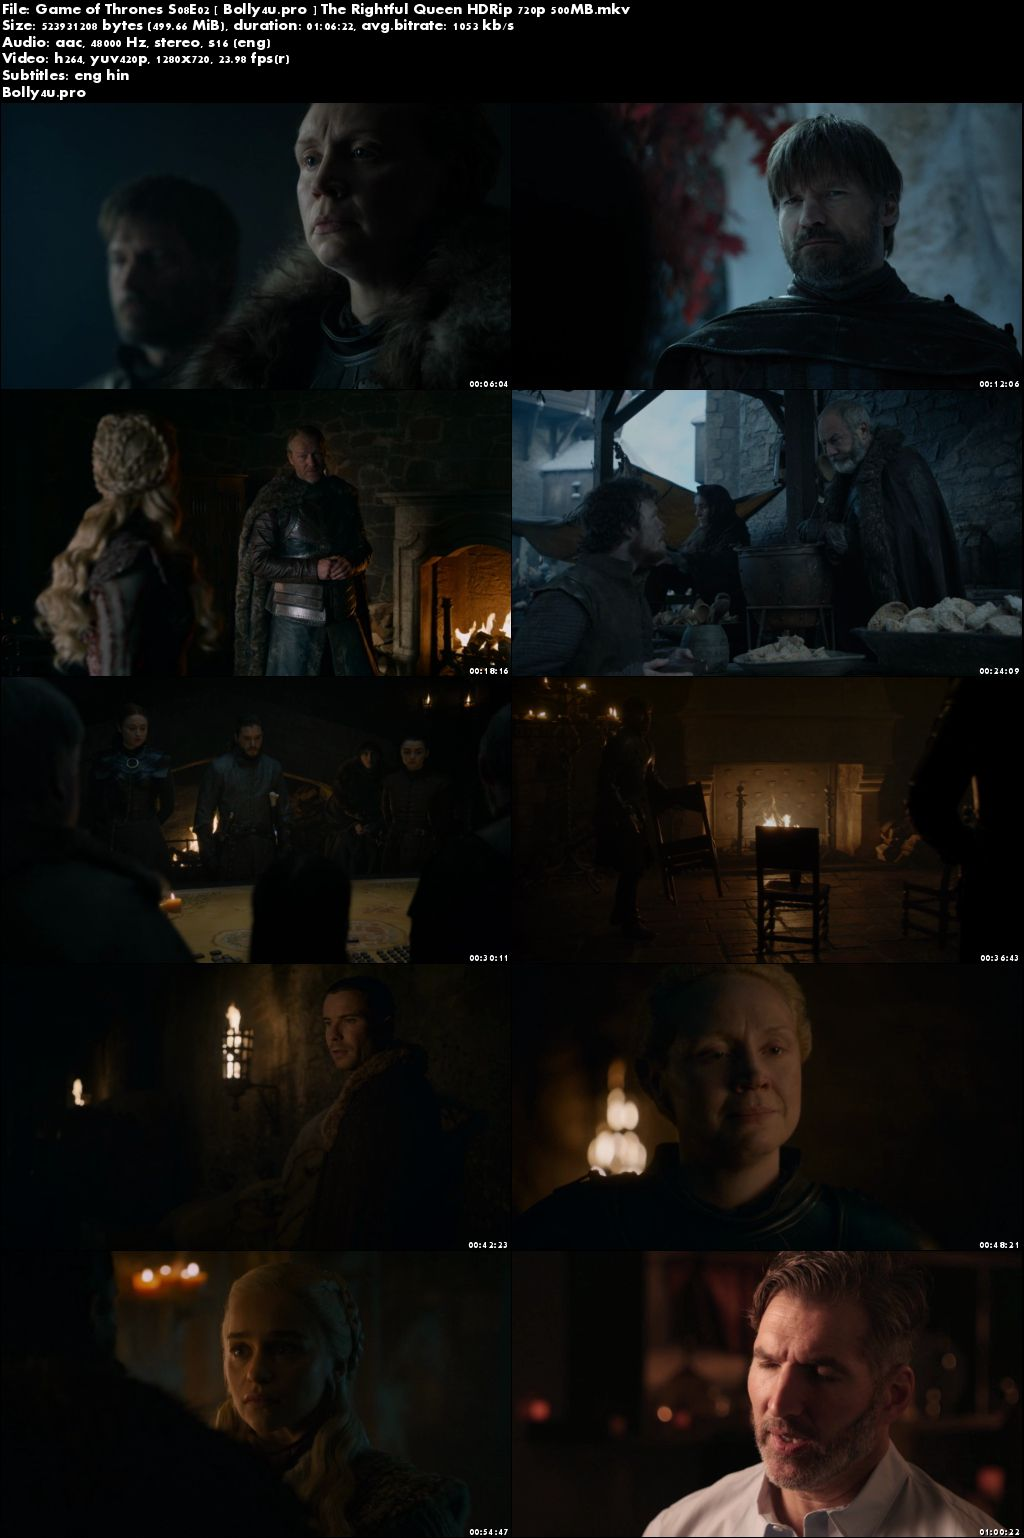 Game of Thrones S08E02 WEB-DL 500MB English 720p Hindi Sub Download